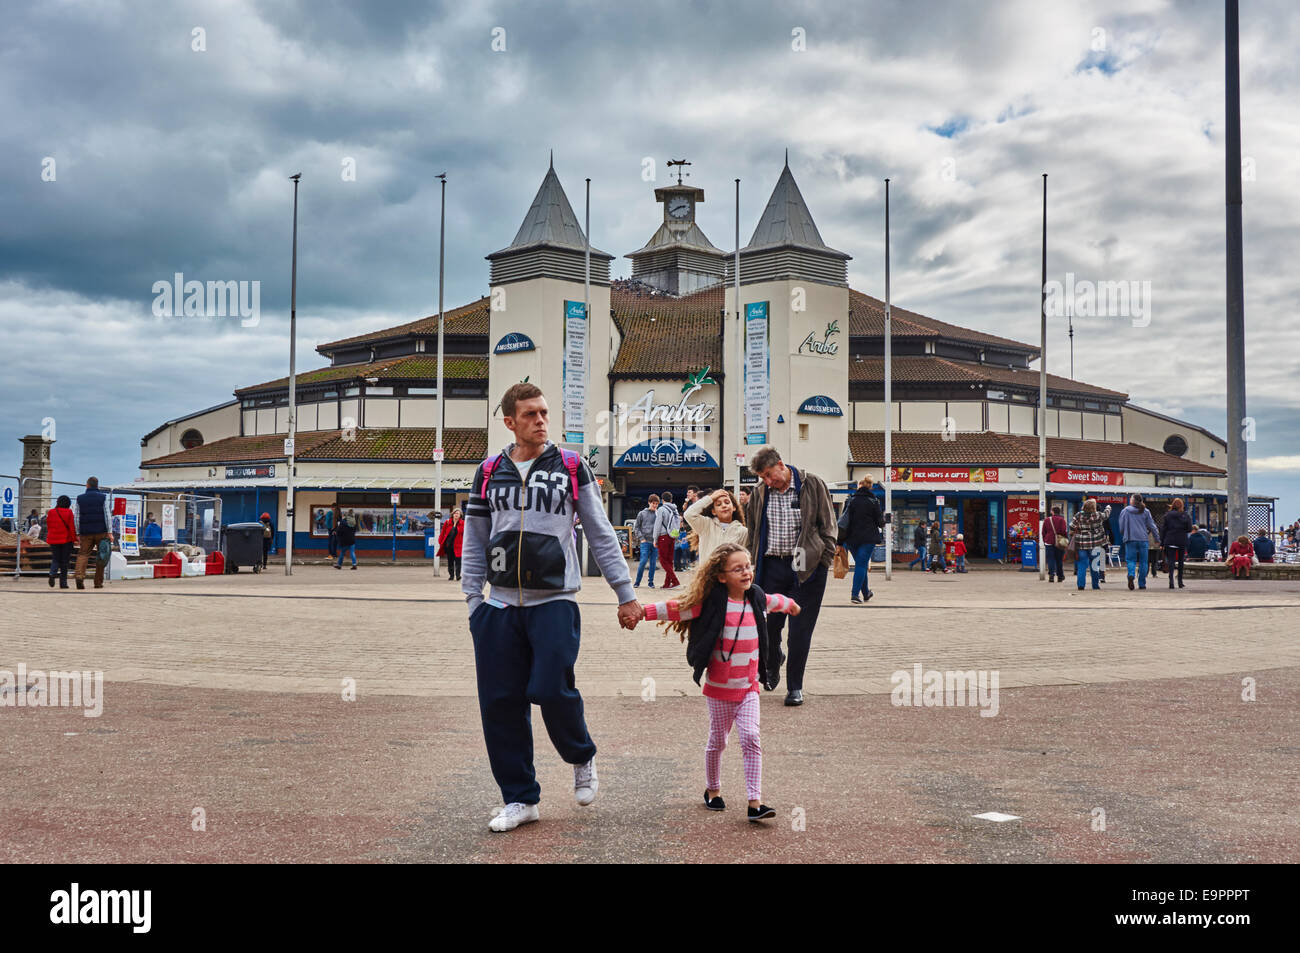 Bournemouth Pier Family Amusements on an overcast day, with many visitors nearby. Father and daughter in foreground. - Stock Image